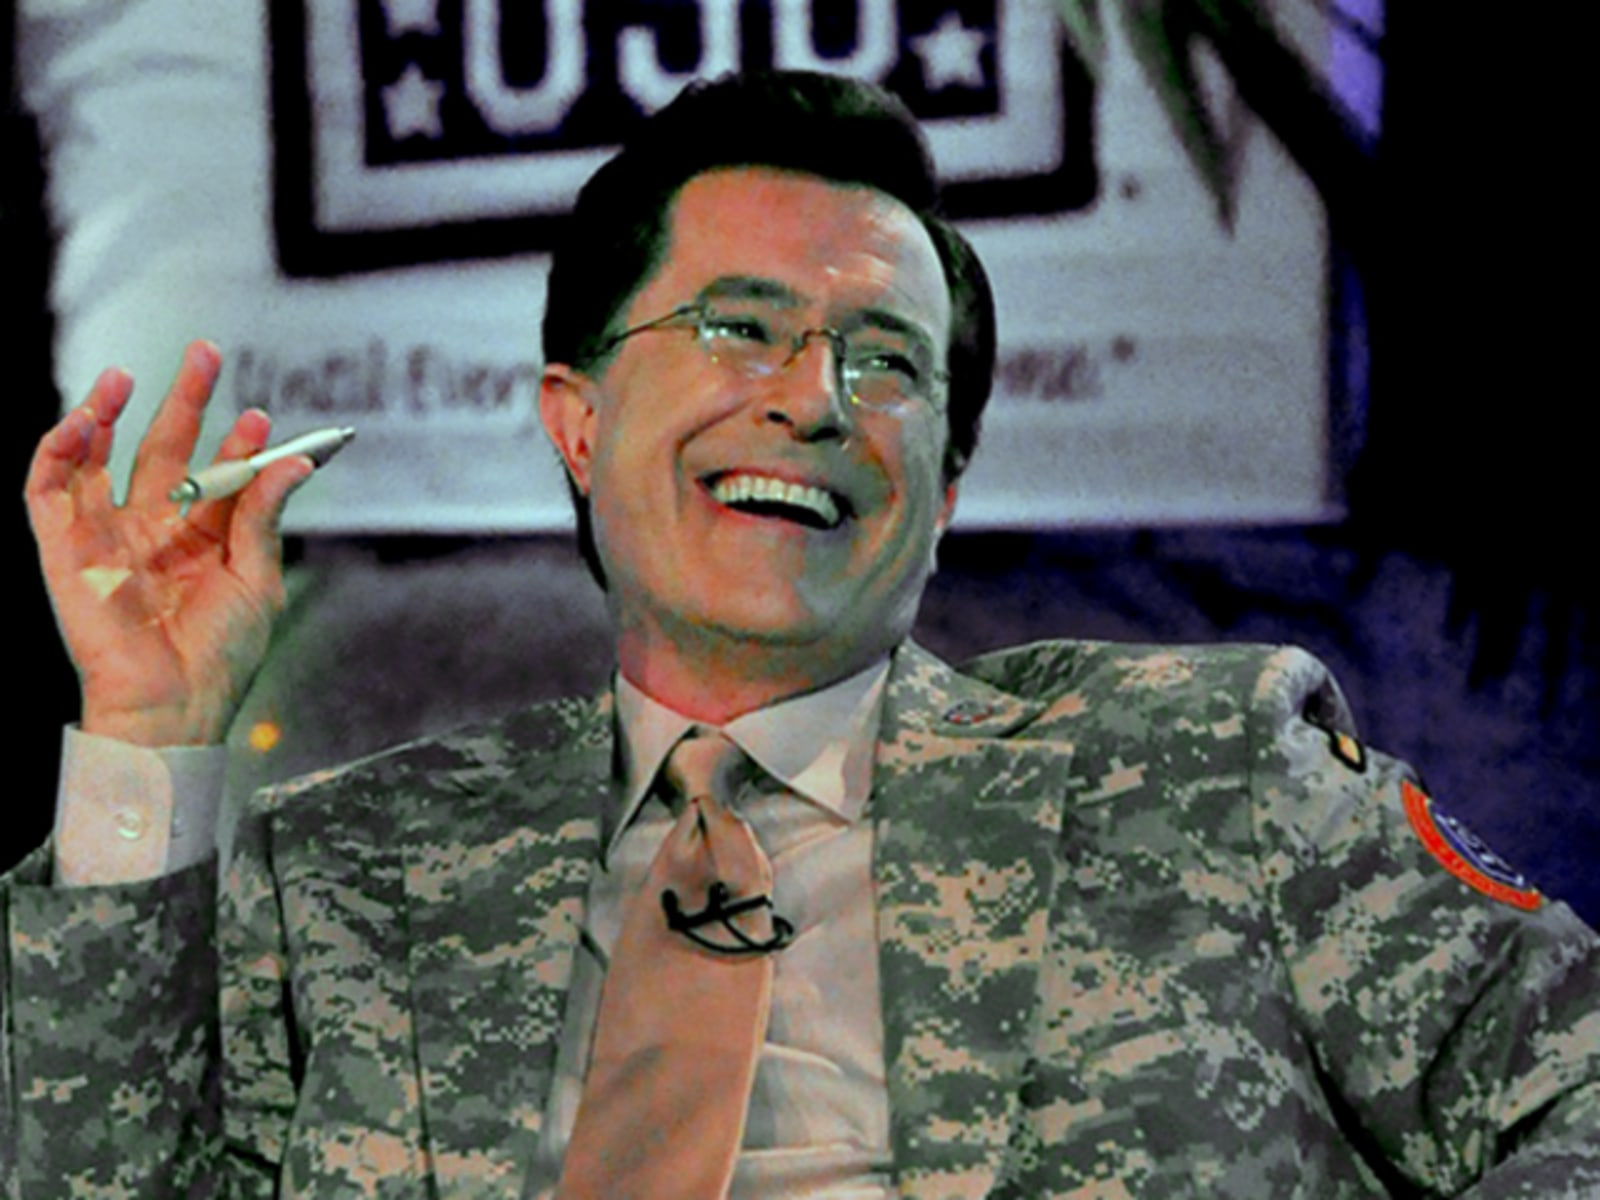 The Colbert Report In Iraq